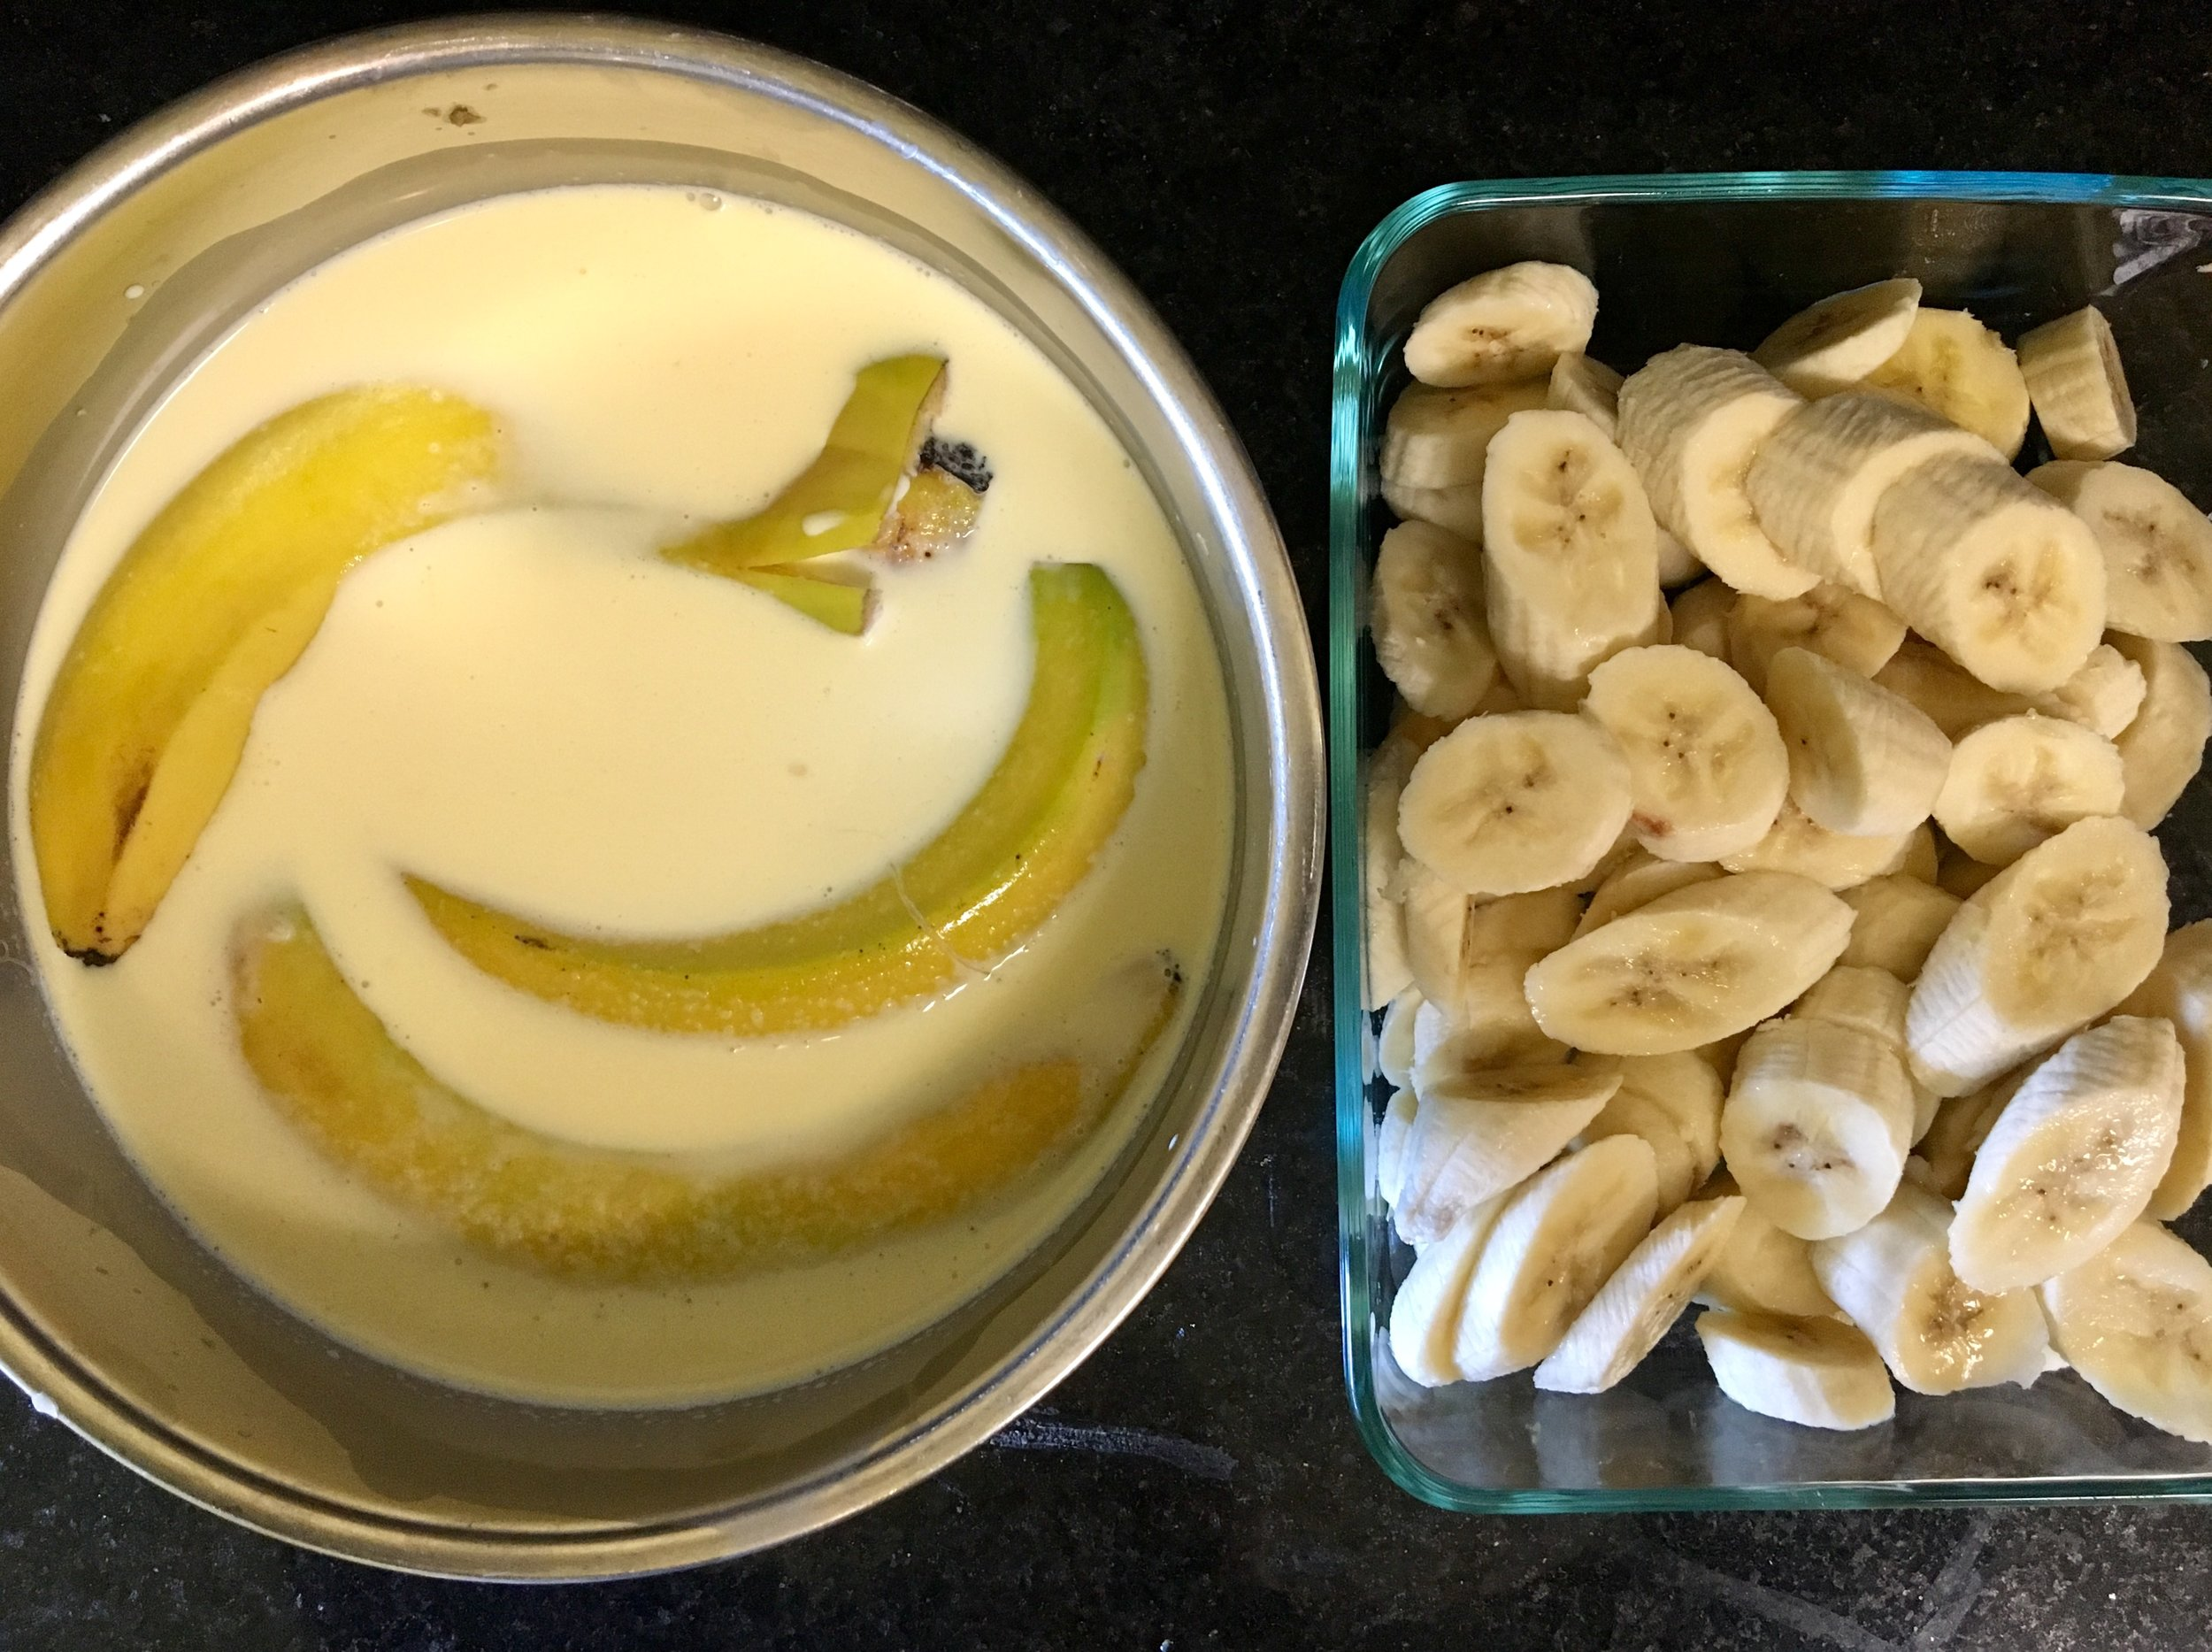 Infusing flavor from the banana peels into the half-n-half instead of imitation flavoring.